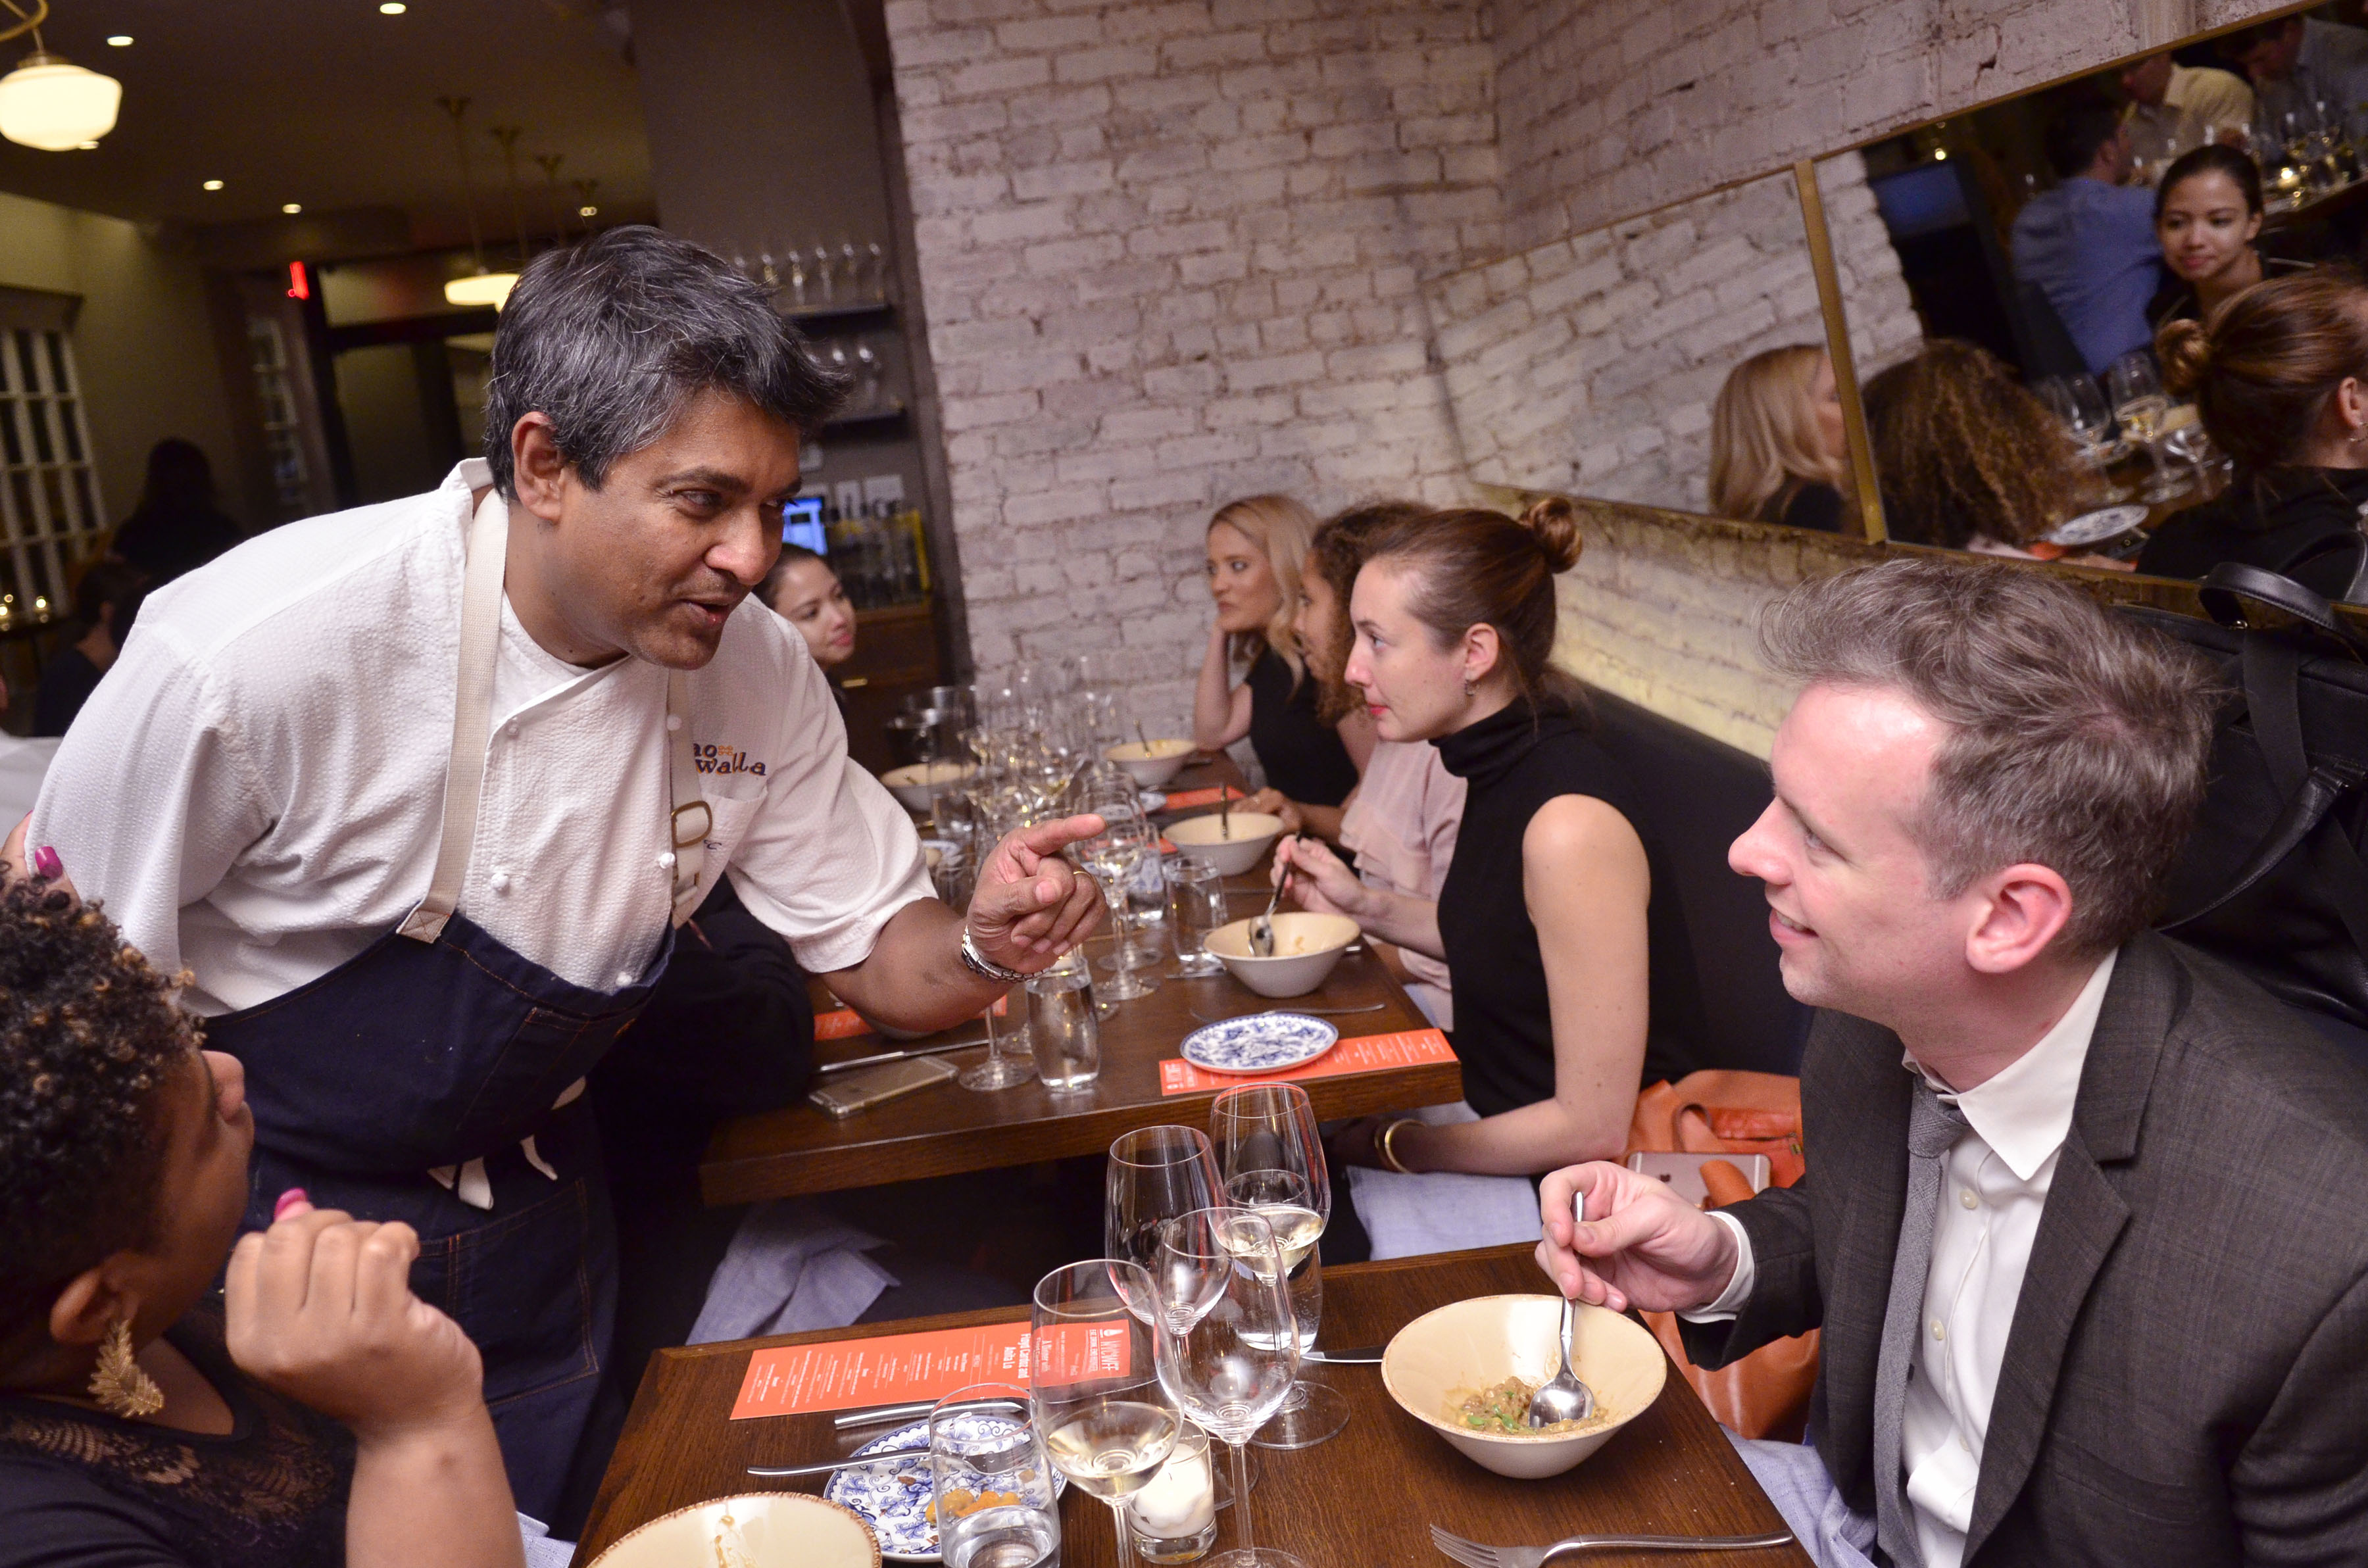 Floyd Cardoz speaks with diners at Paowalla